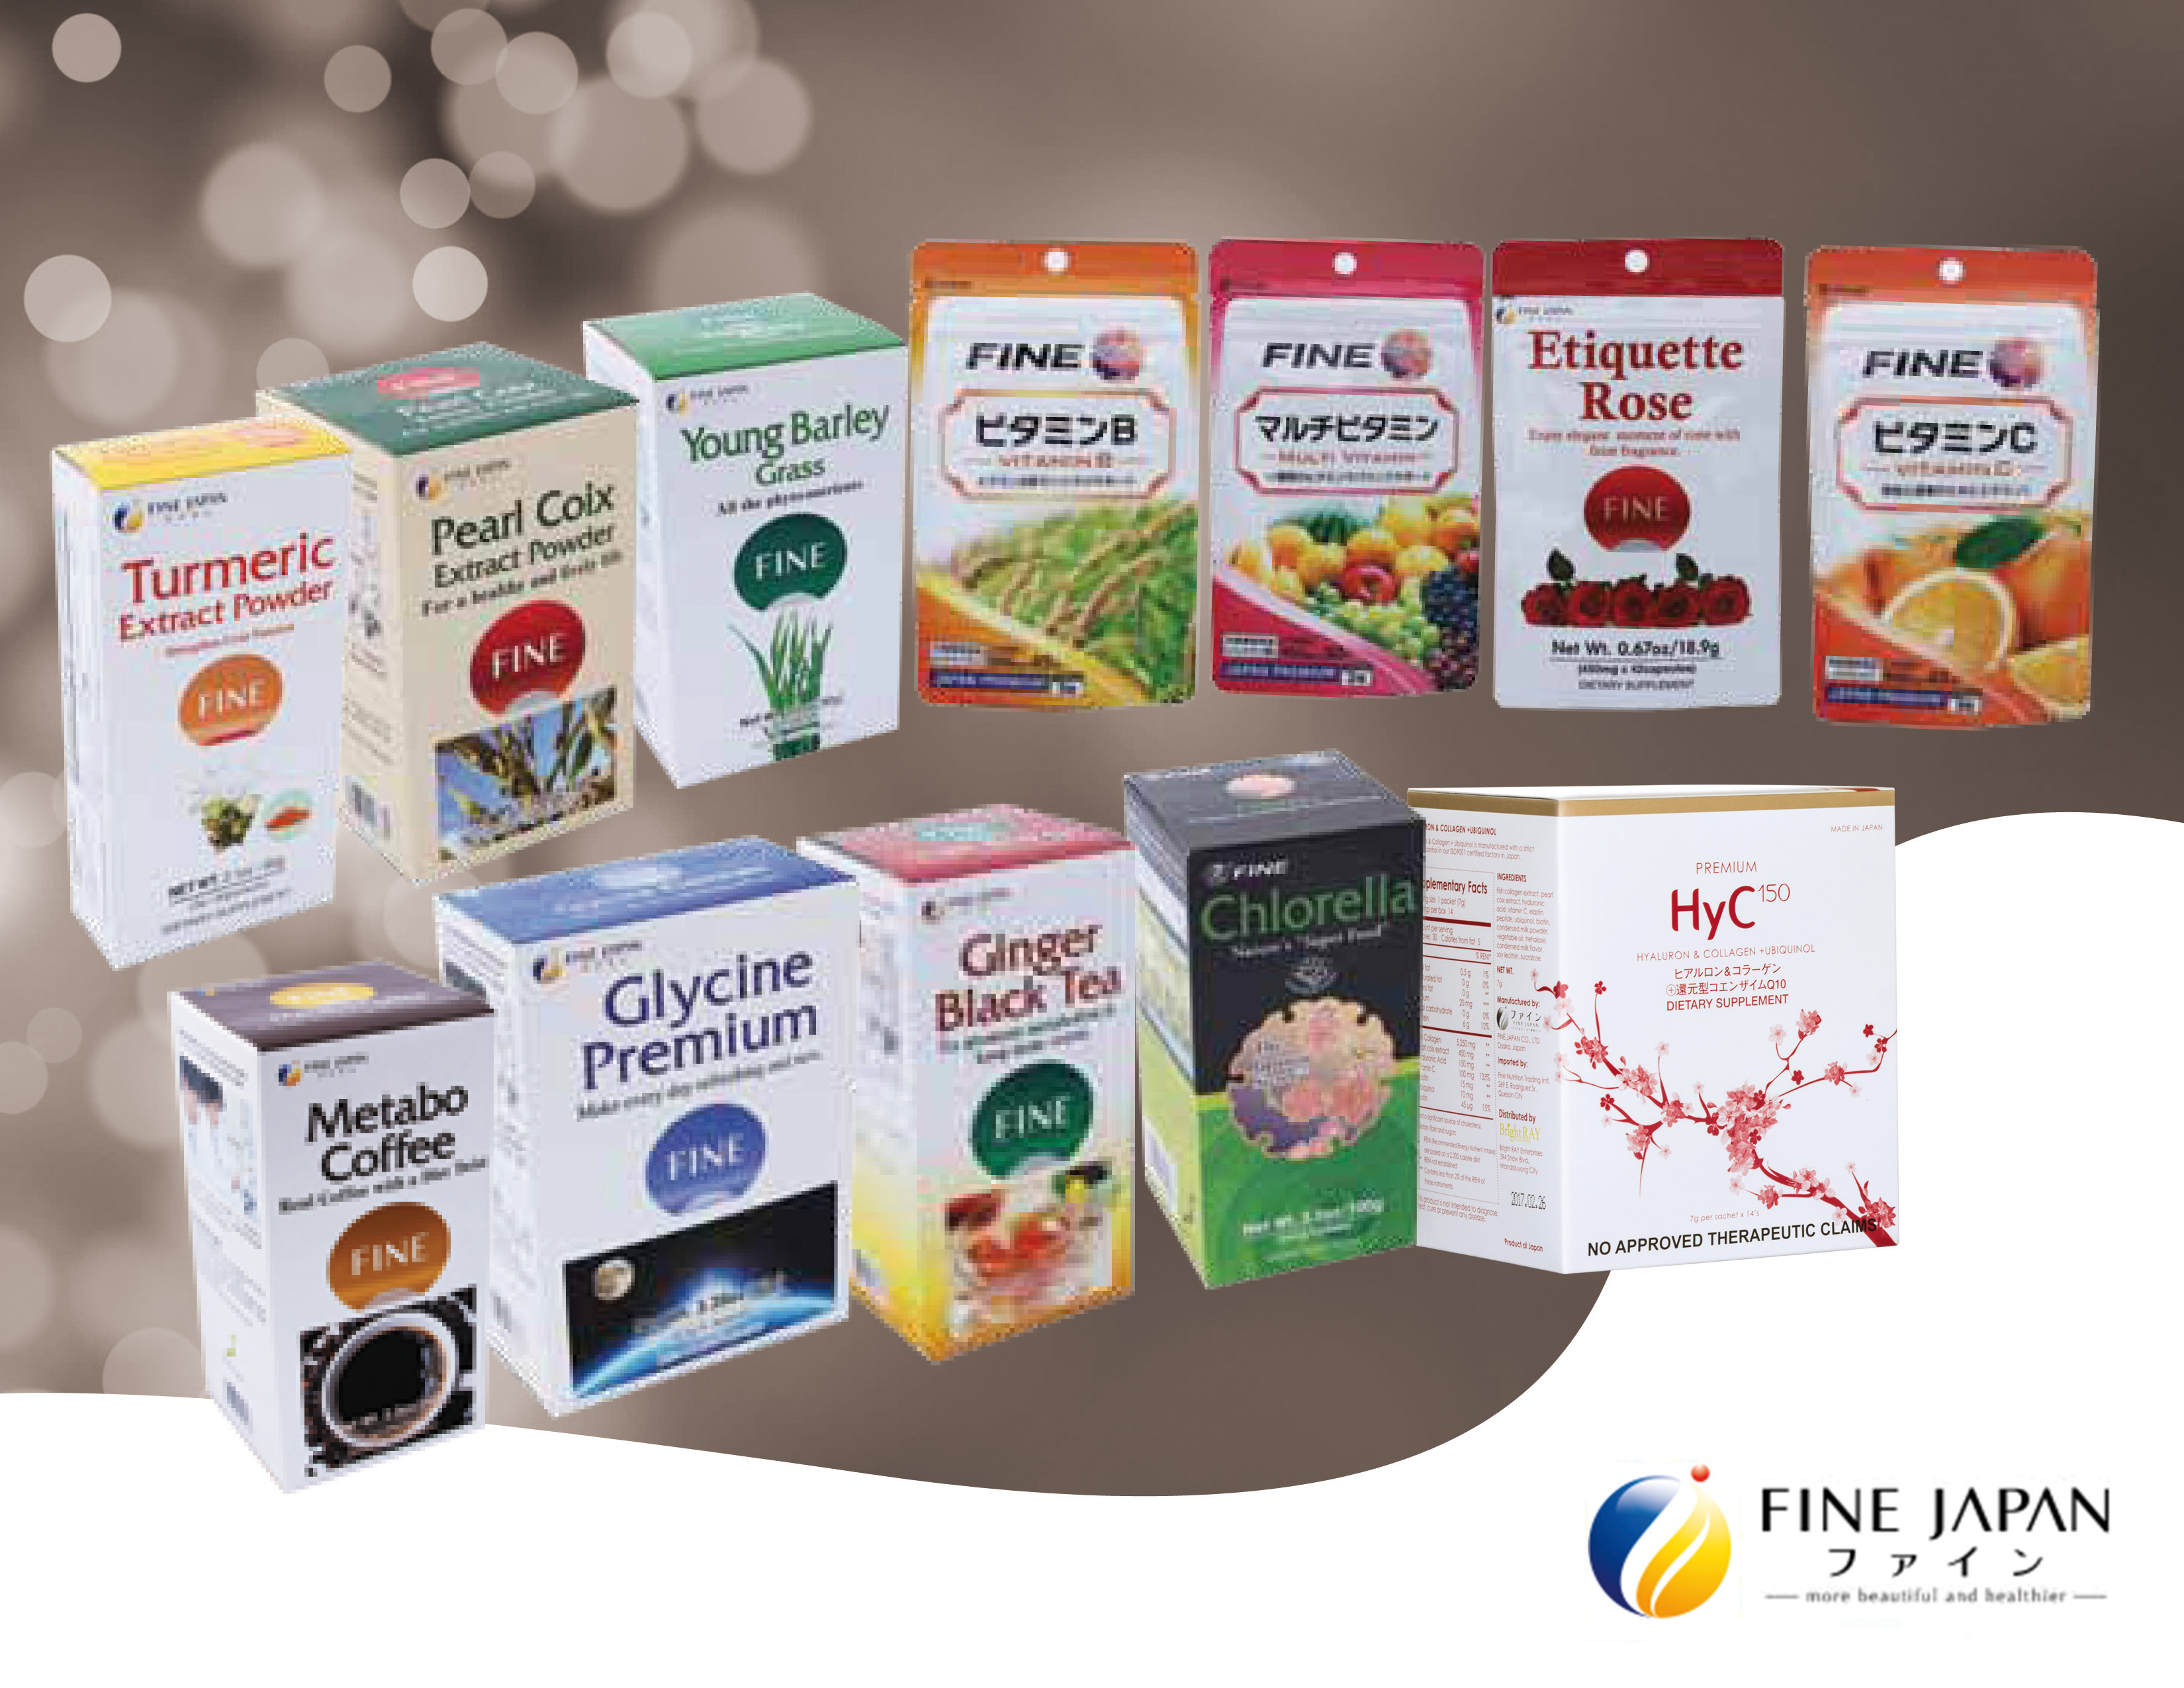 A finer life with Fine Japan Co. Ltd.'s beauty and wellness food supplements